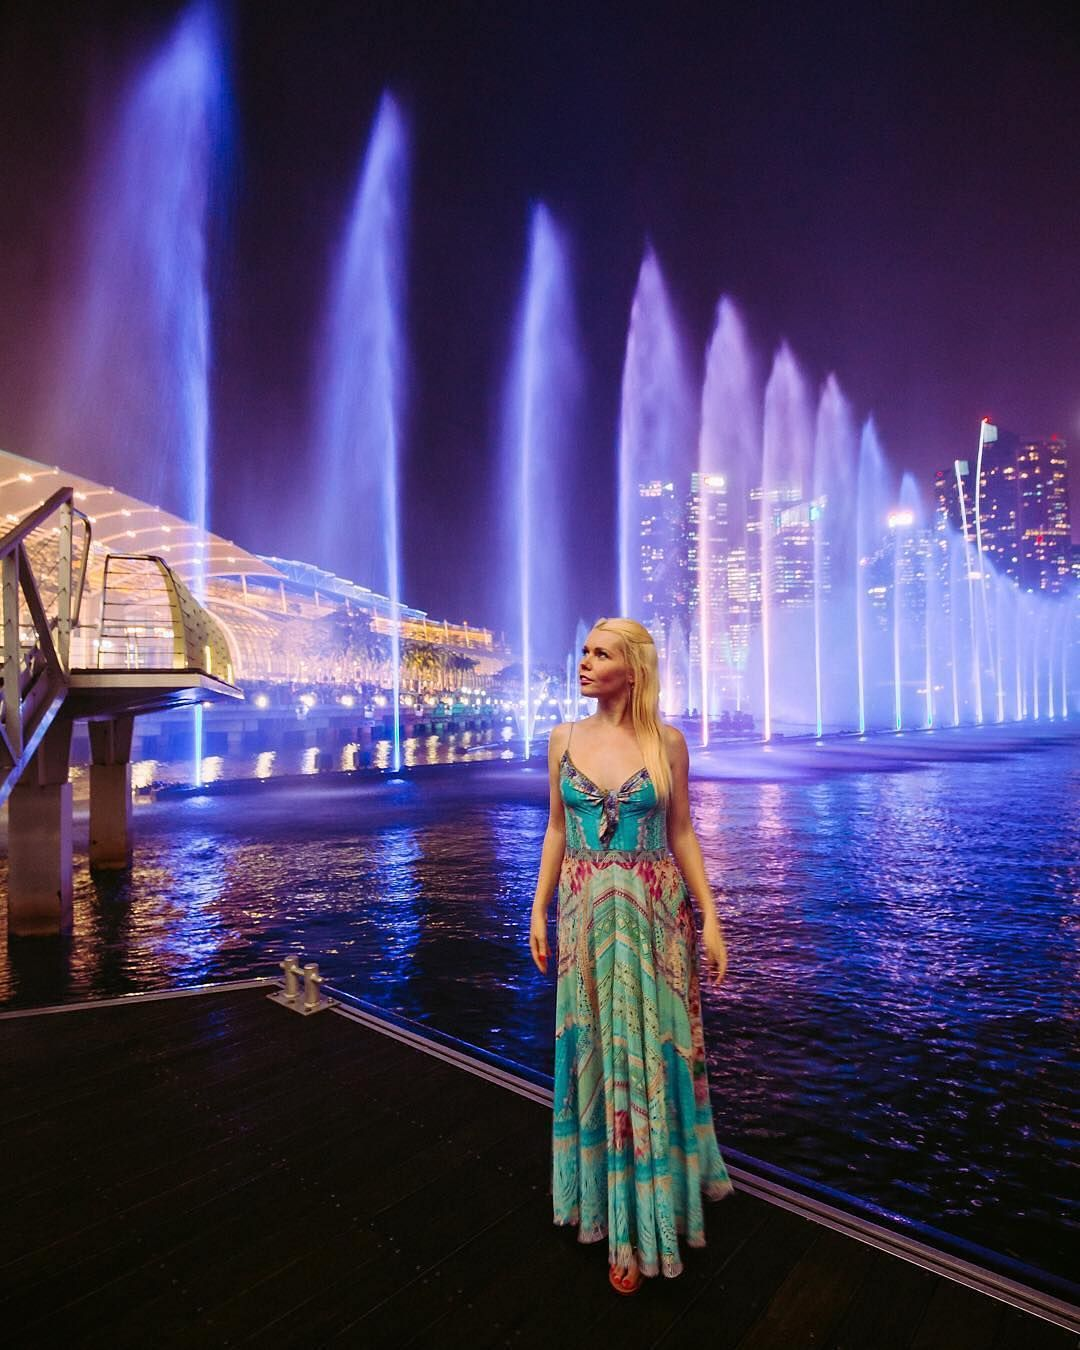 8dec4d0ce36881b03558ba95784c59a3 - Distance From Marina Bay Sands To Gardens By The Bay